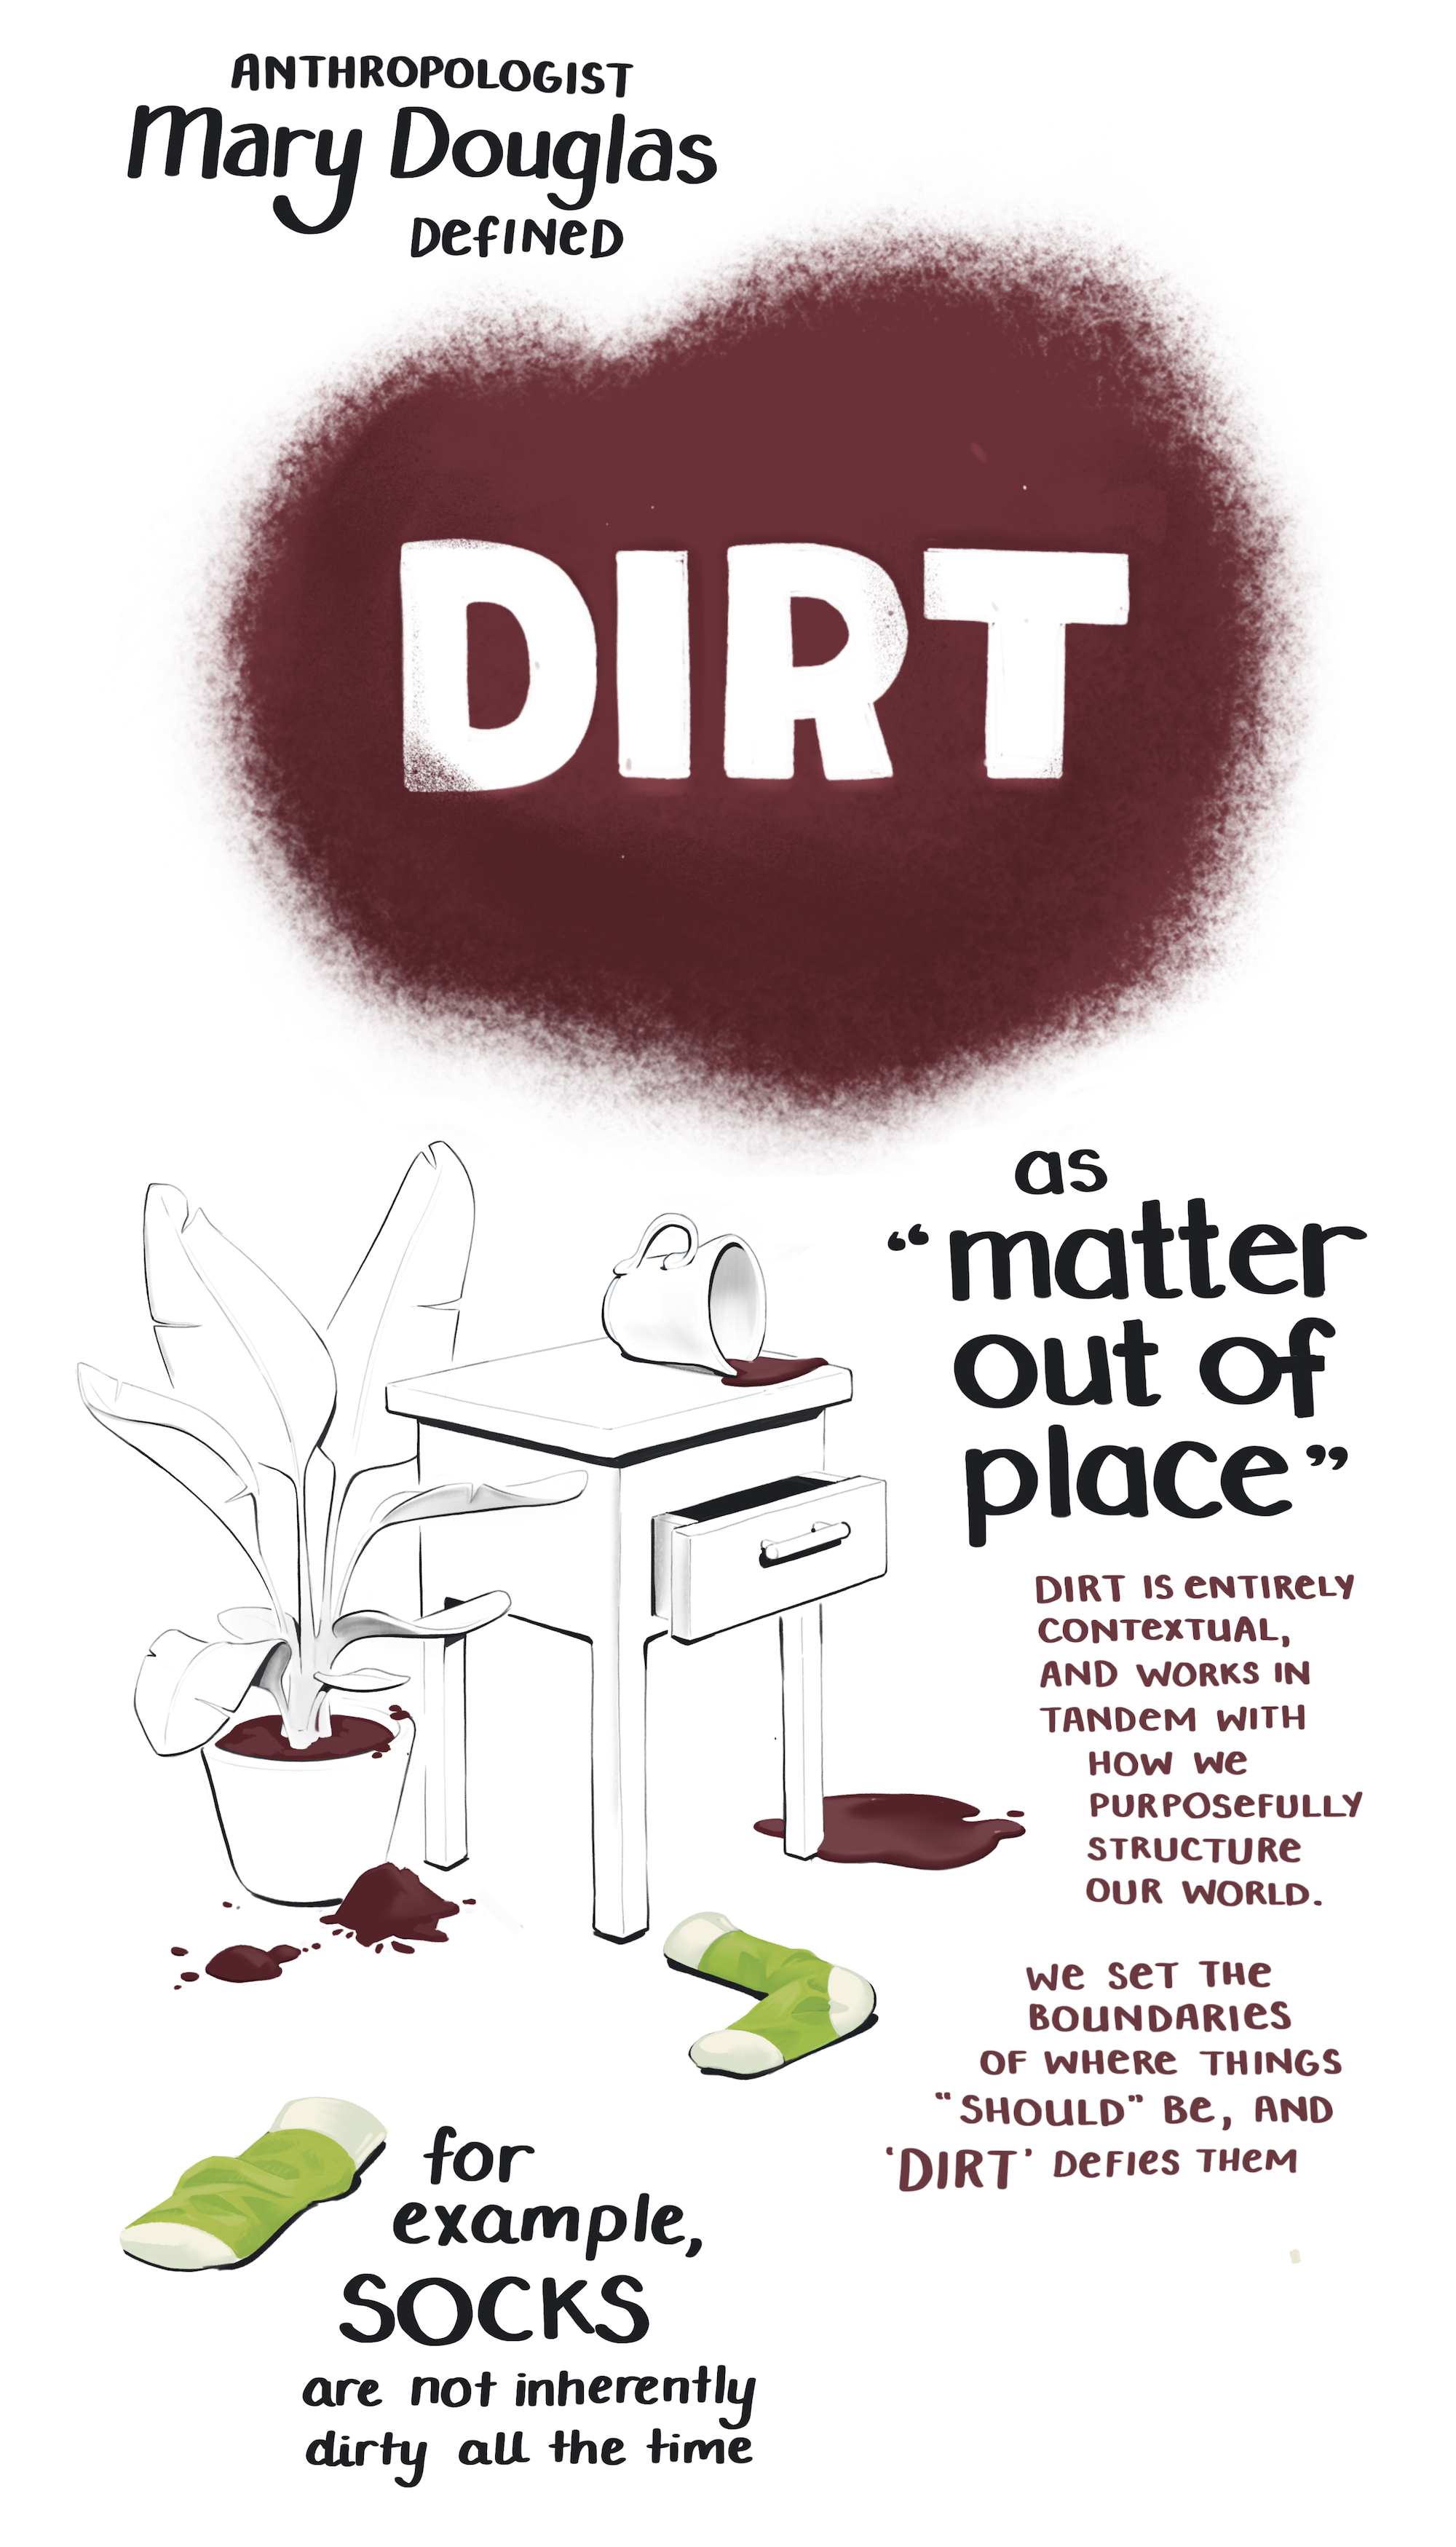 Mary Douglas defined dirt as matter out of place. Socks are not inherently dirty all the time.